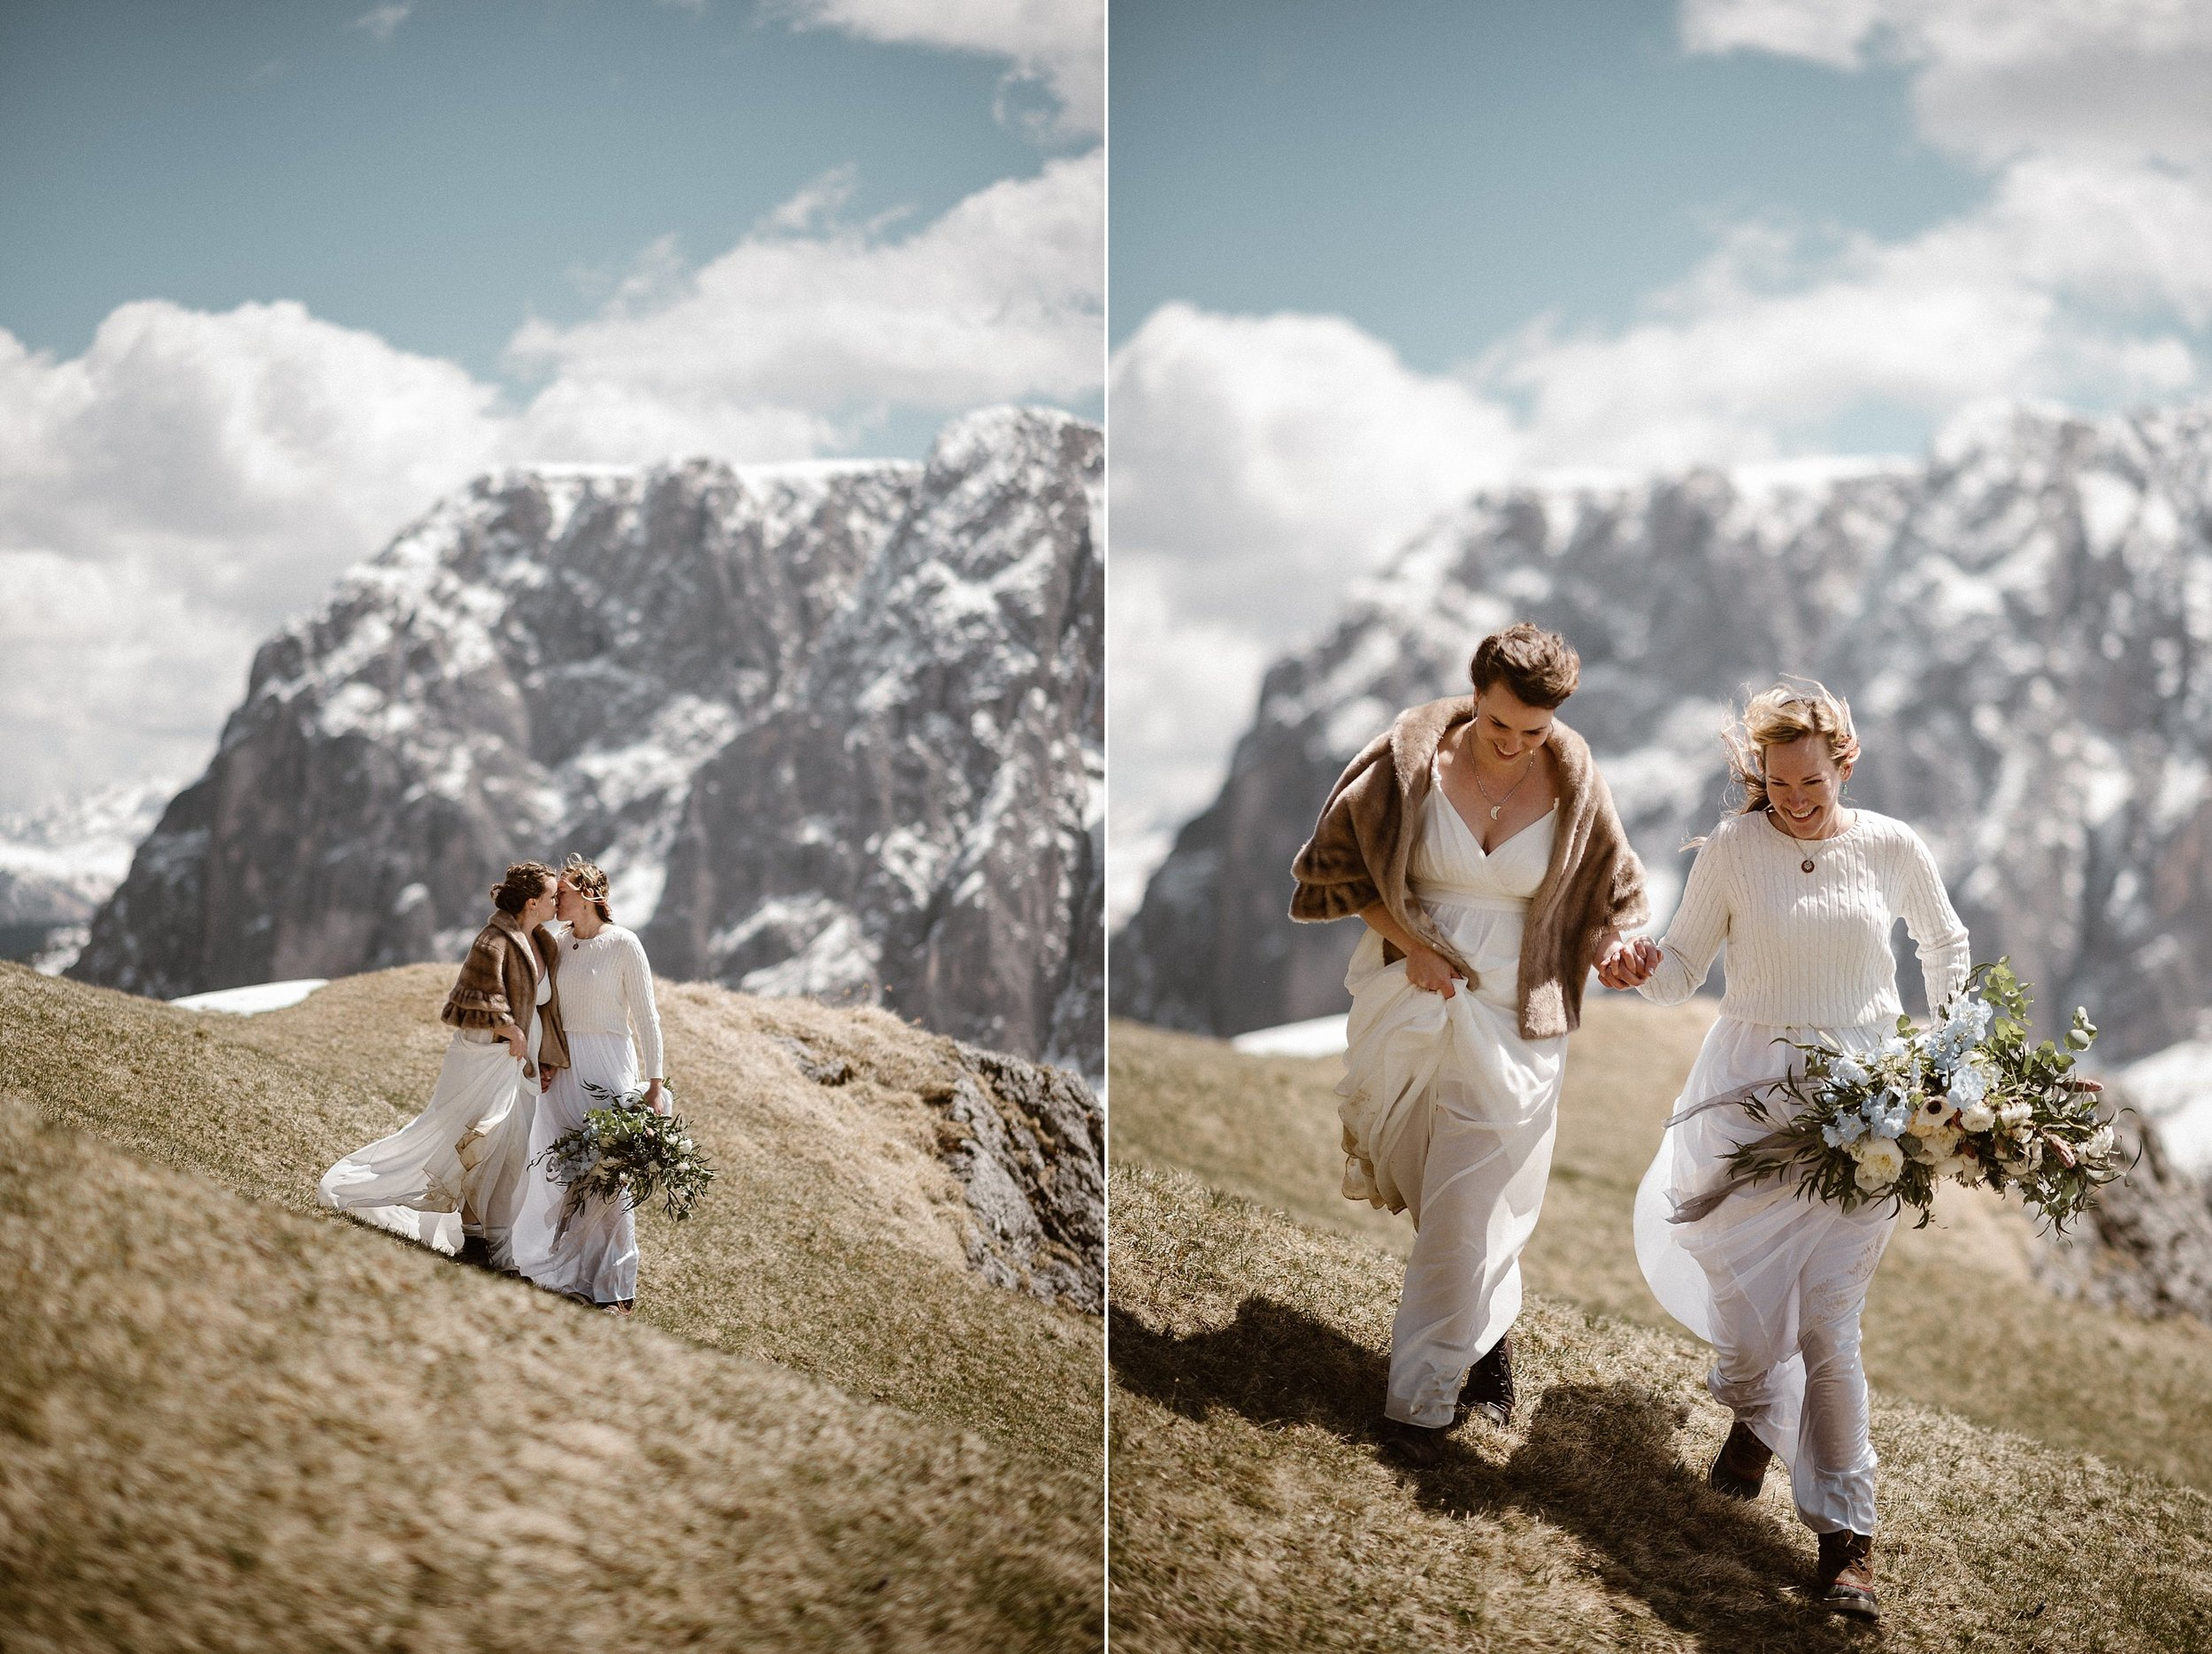 Hiking their way down the Italian Dolomites' Gardena Pass and on to their next location for their intimate and non-traditional elopement through Northern Italy with wedding photographer Maddie Mae by their sides to capture every sweet moment.